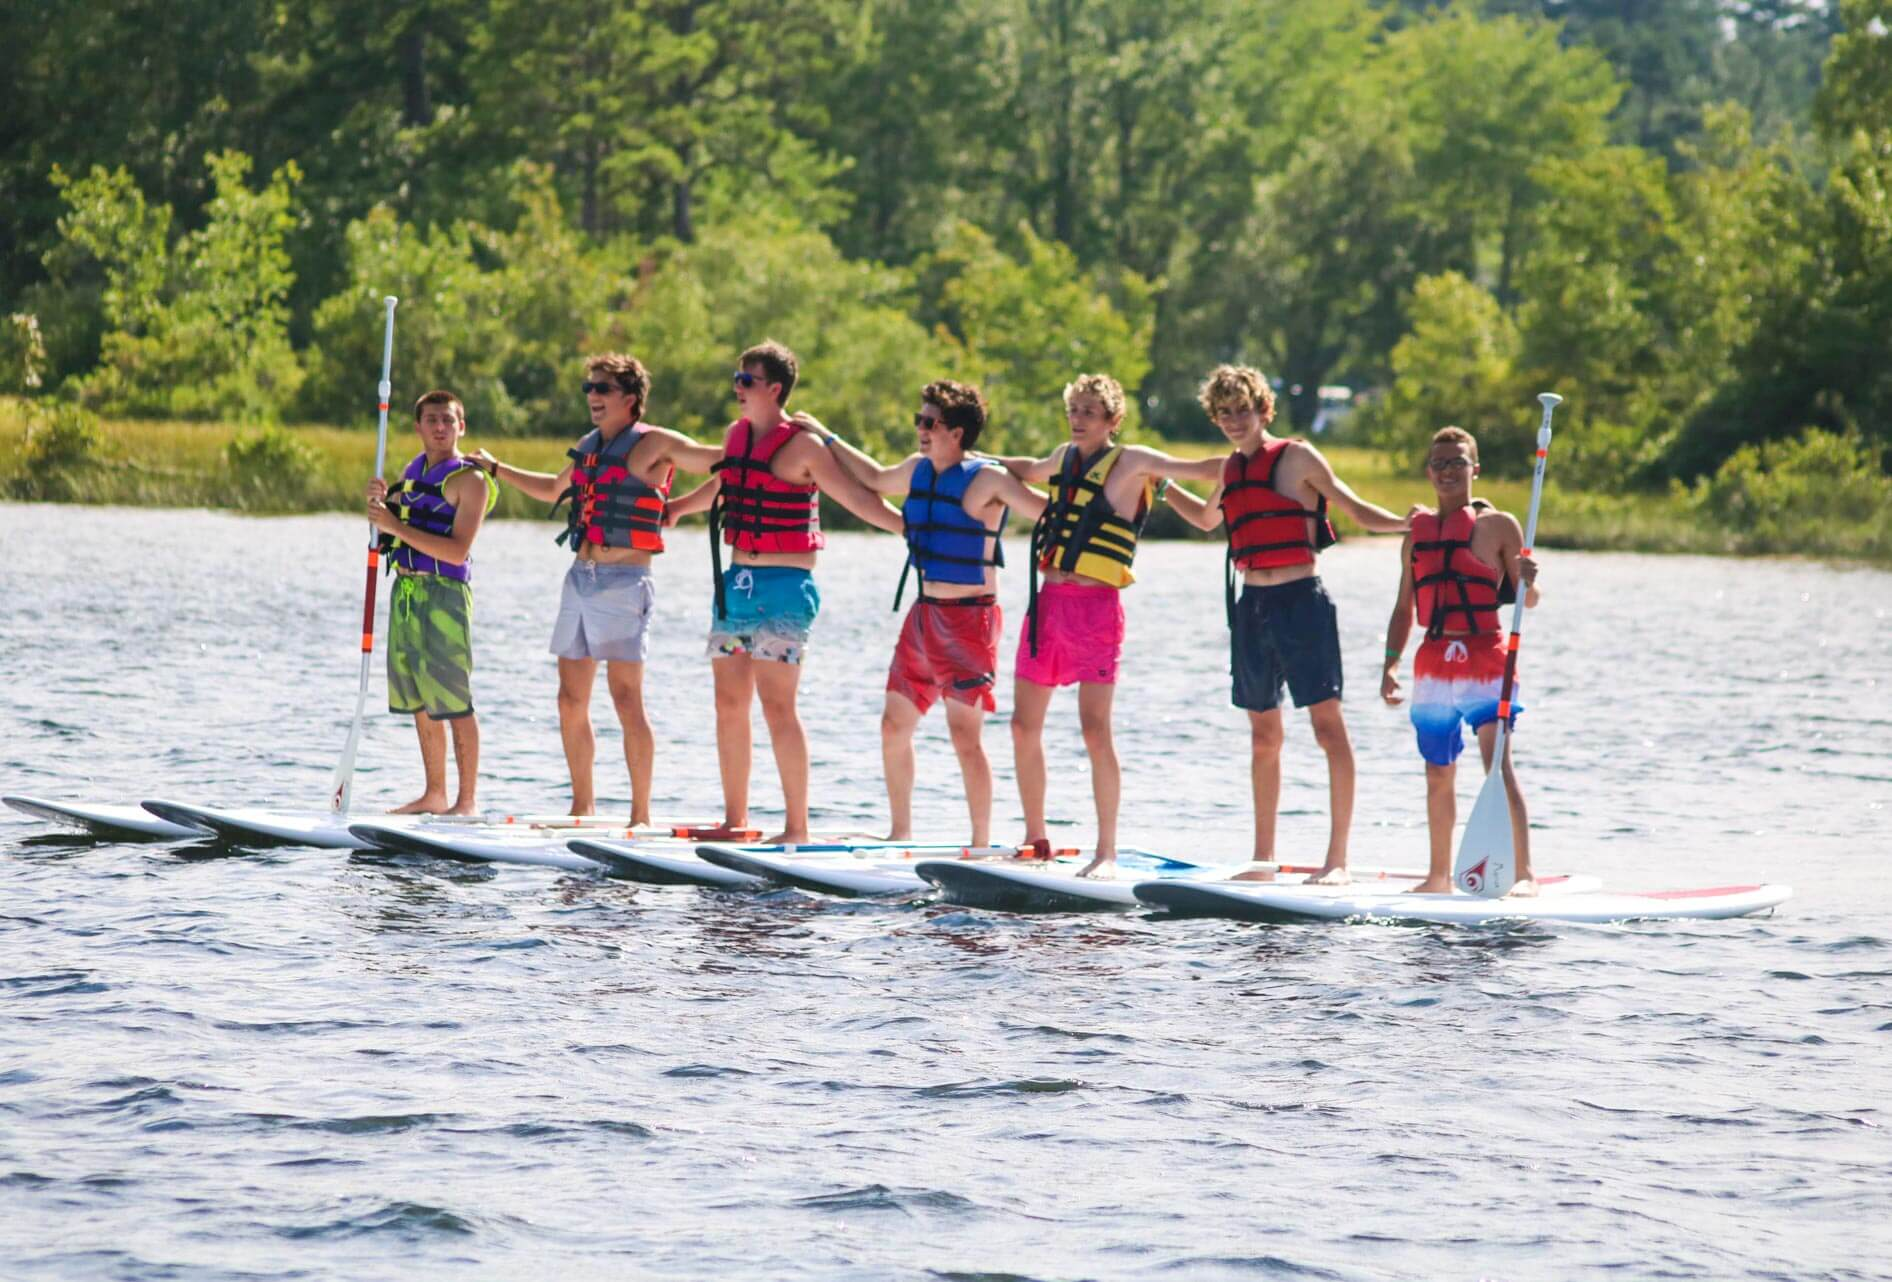 Row of campers on stand-up paddleboards